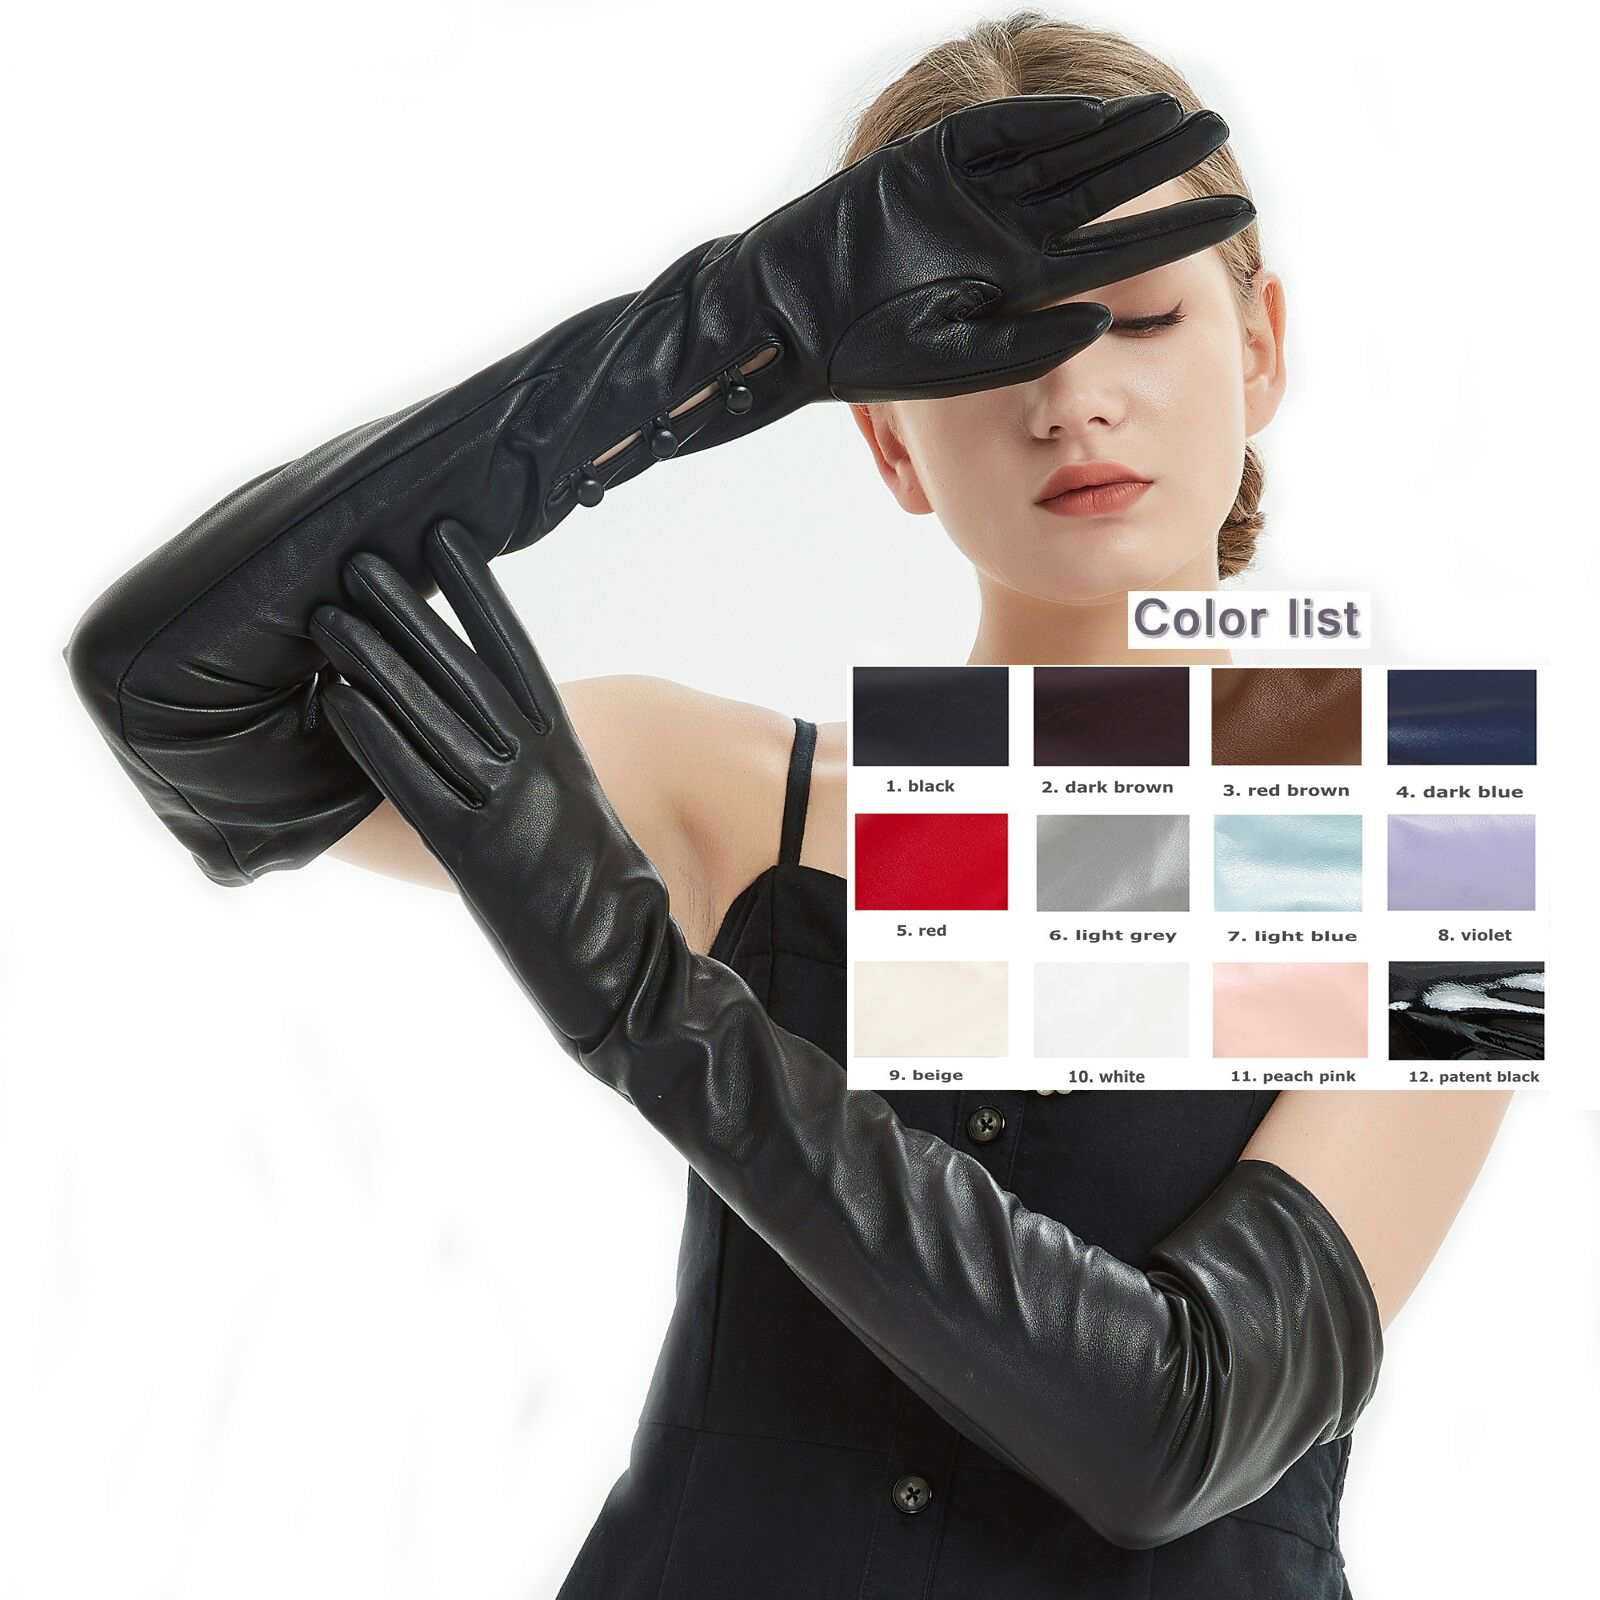 custom made 40cm to 80cm long wrist buttons style 2 real sheep leather evening opera gloves